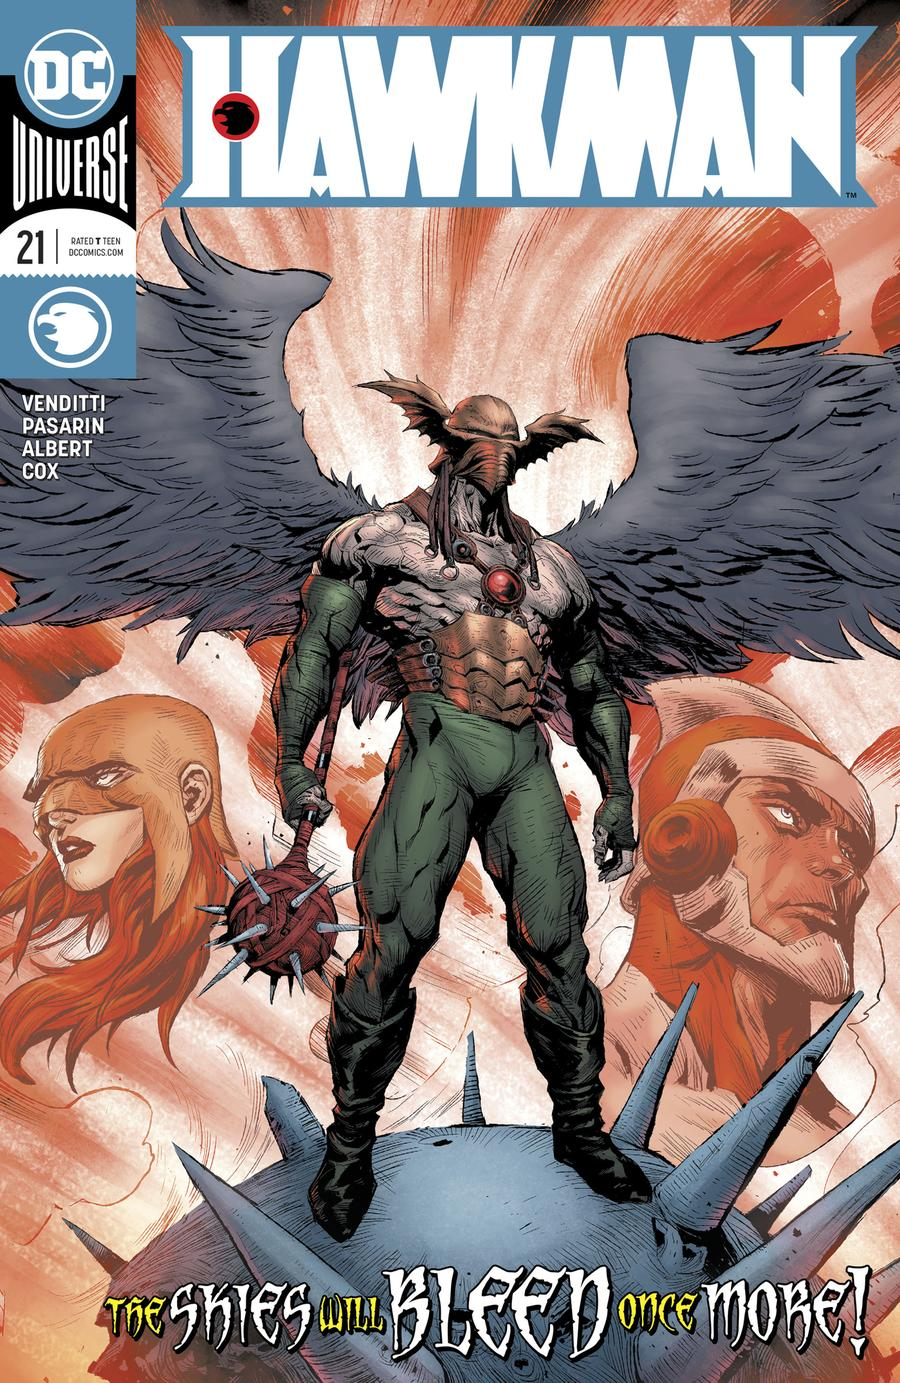 Hawkman Vol 5 #21 Cover A Regular Raymund Bermudez Cover